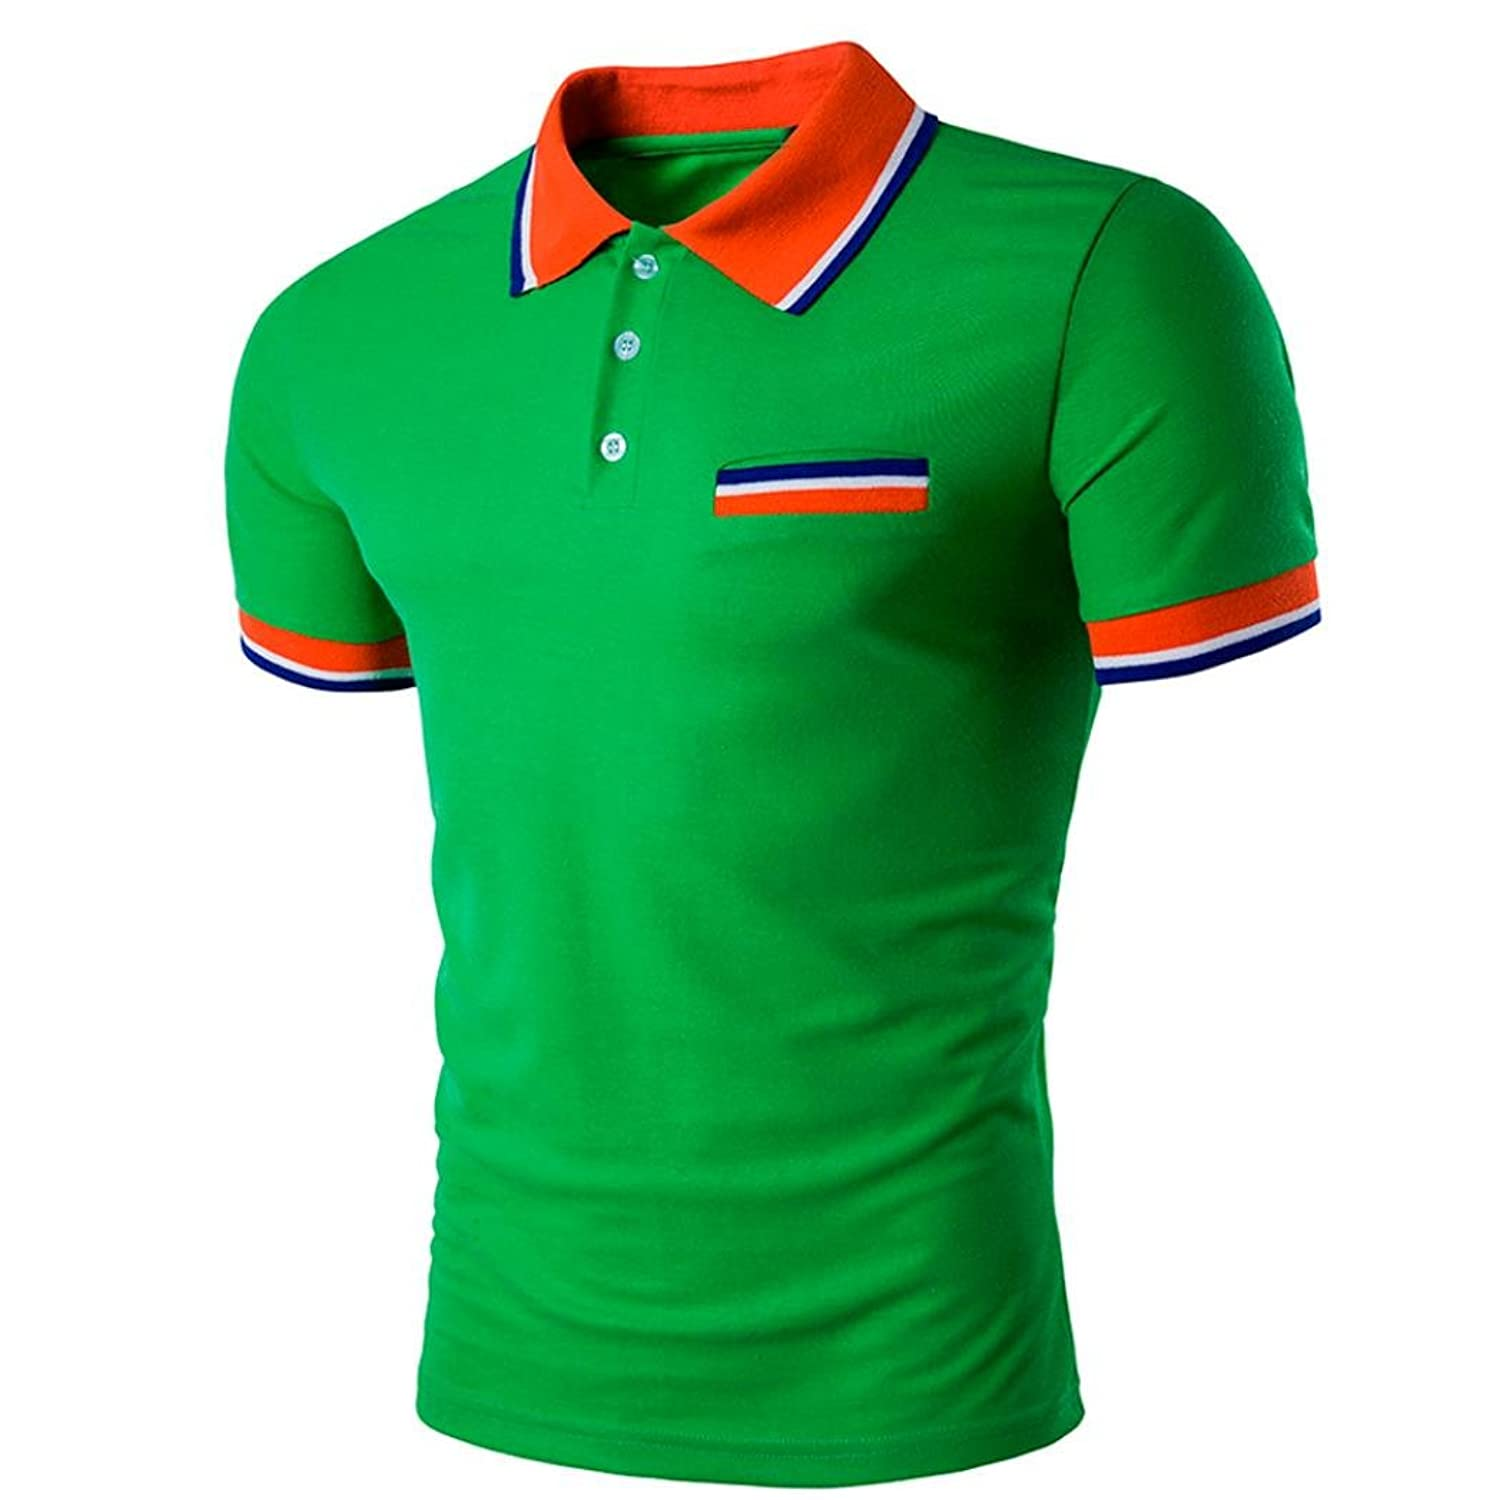 891fafa9584 ☆Polo T Shirt Mens Buttons Design Half Cardigans Short Sleeve Slim Fit  Casual SPE969. I play every game as my last game. ☆If you have any  questions